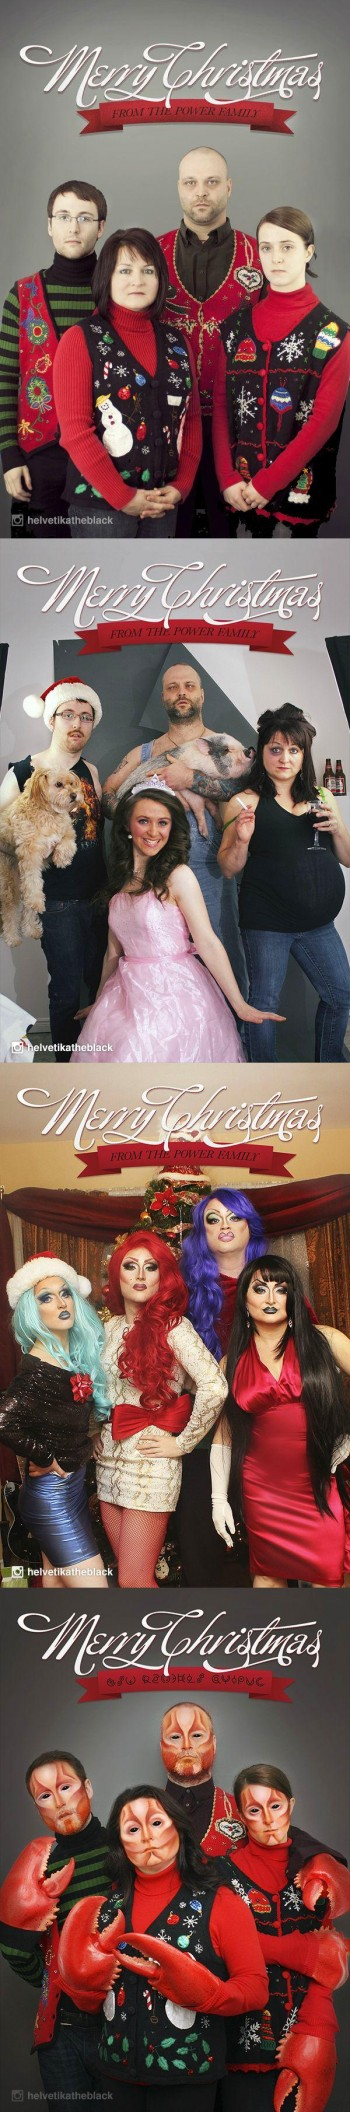 Four Years of Christmas Family Photos